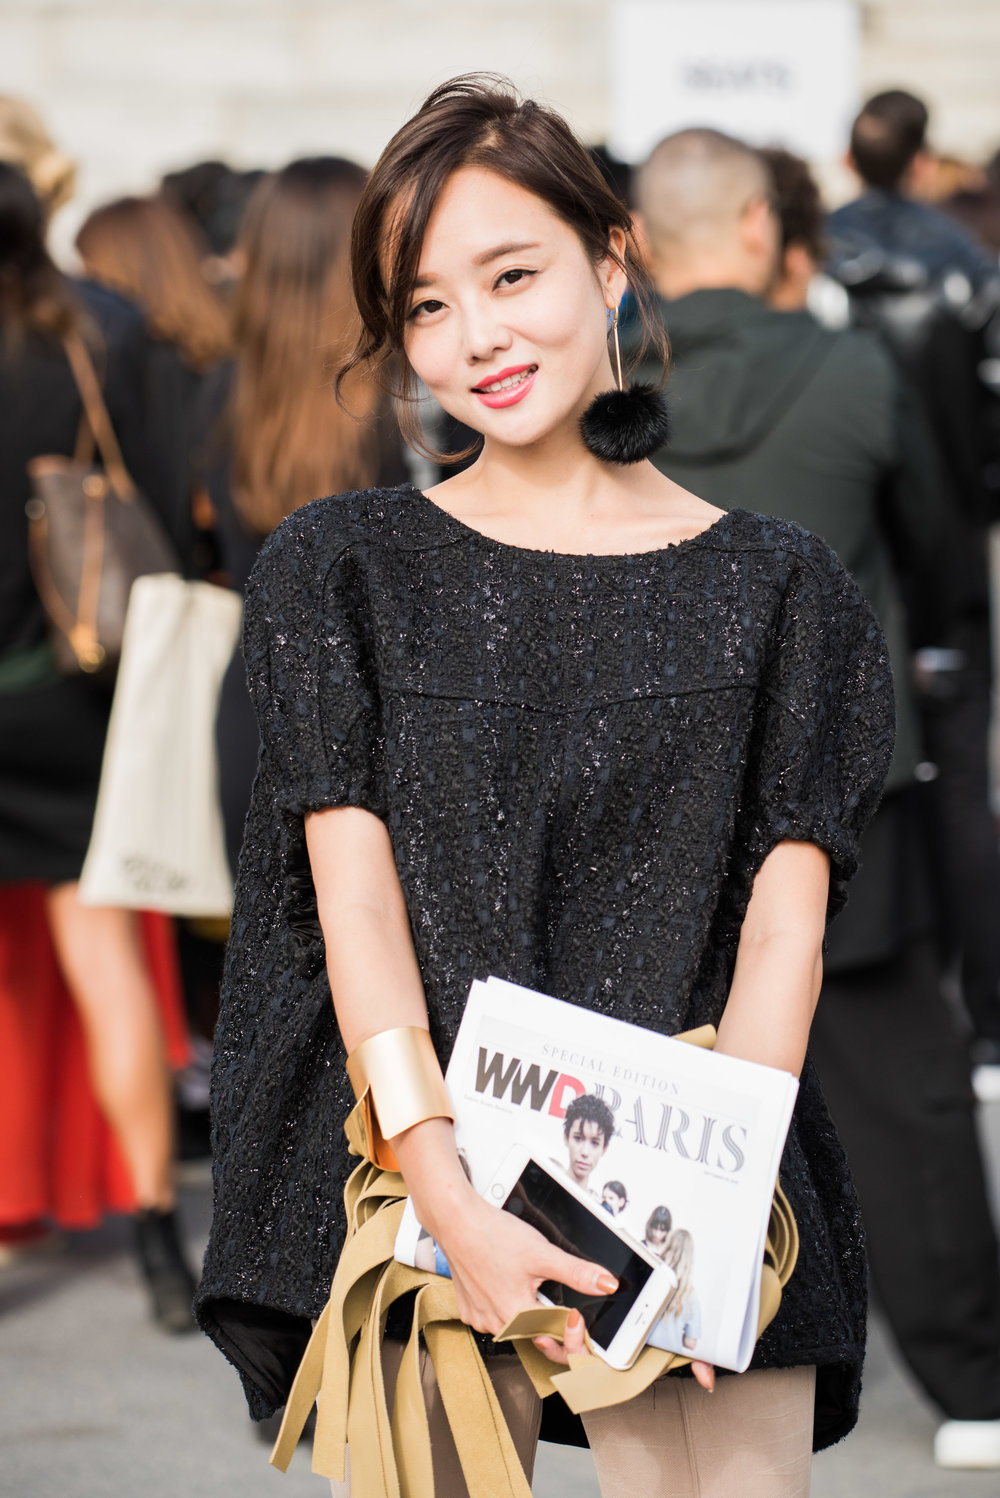 2016-09-29 - PARIS FASHION WEEK - day 3 - Miyaki Street style - 115 of 134 - _DSC8969 - 3 stars.jpg